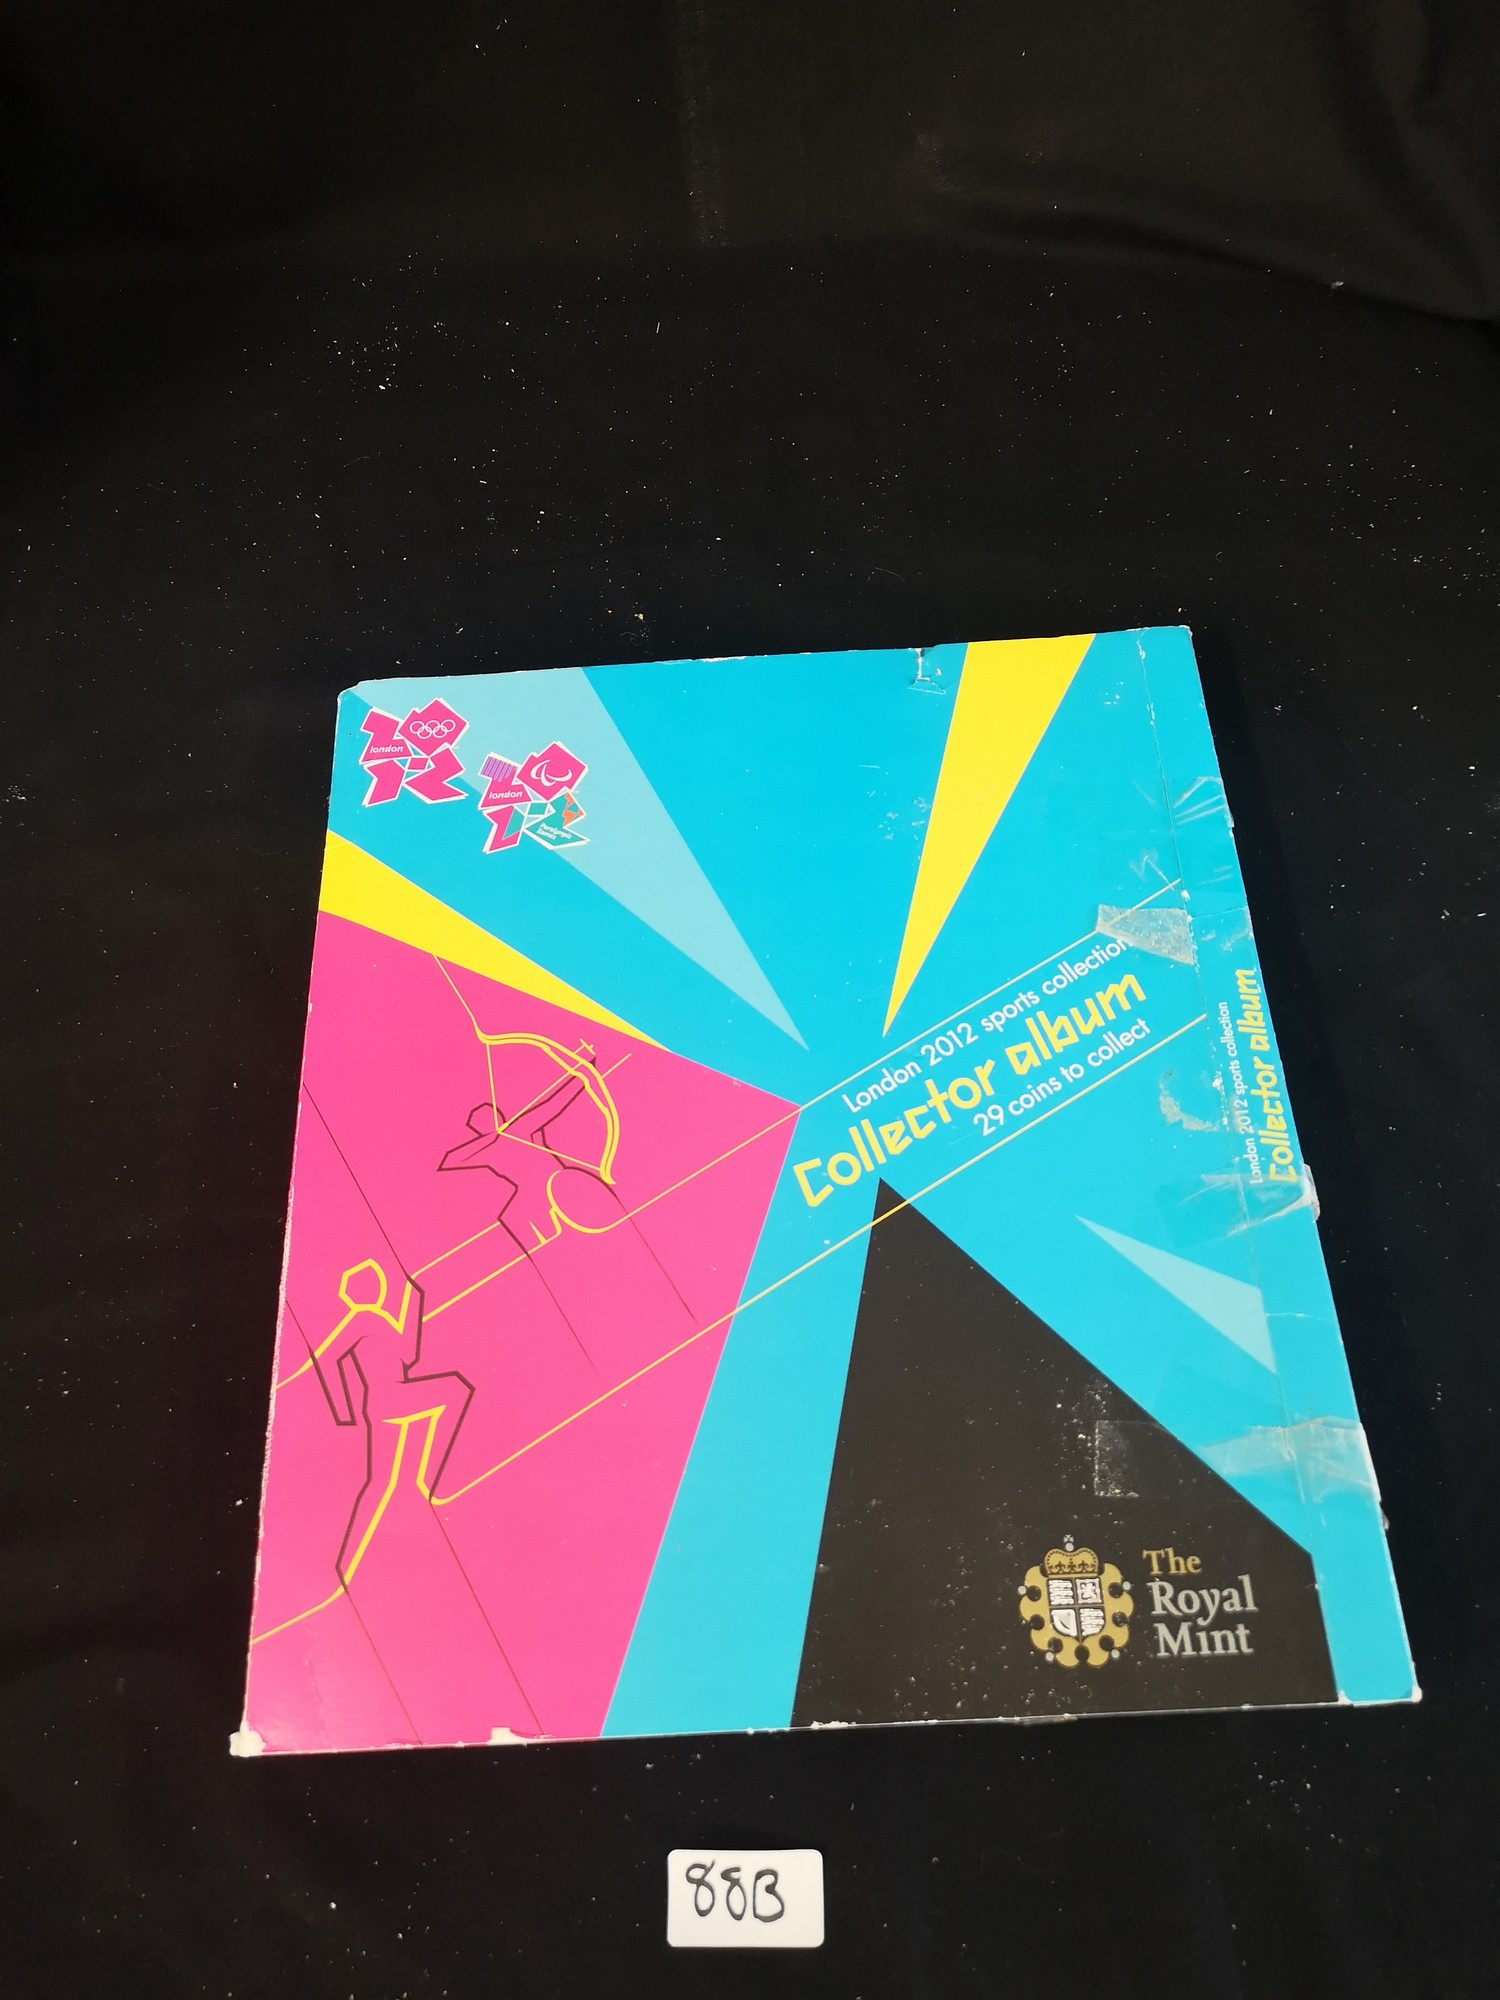 London Olympics 2012 sports collection album complete.